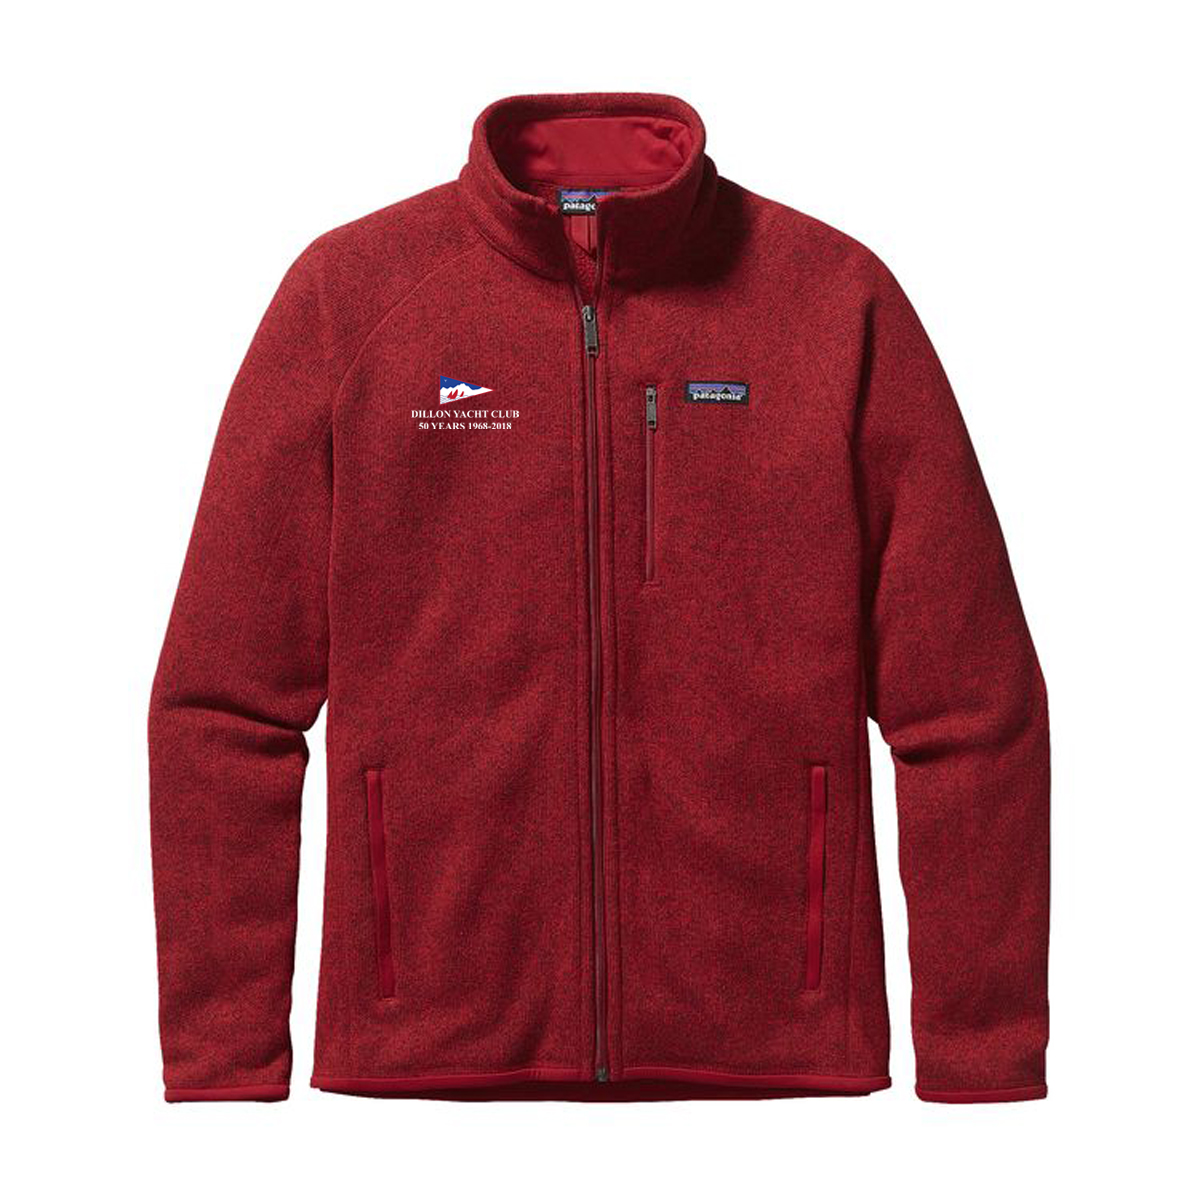 DILLON YACHT CLUB 50YR- PATAGONIA BETTER SWEATER